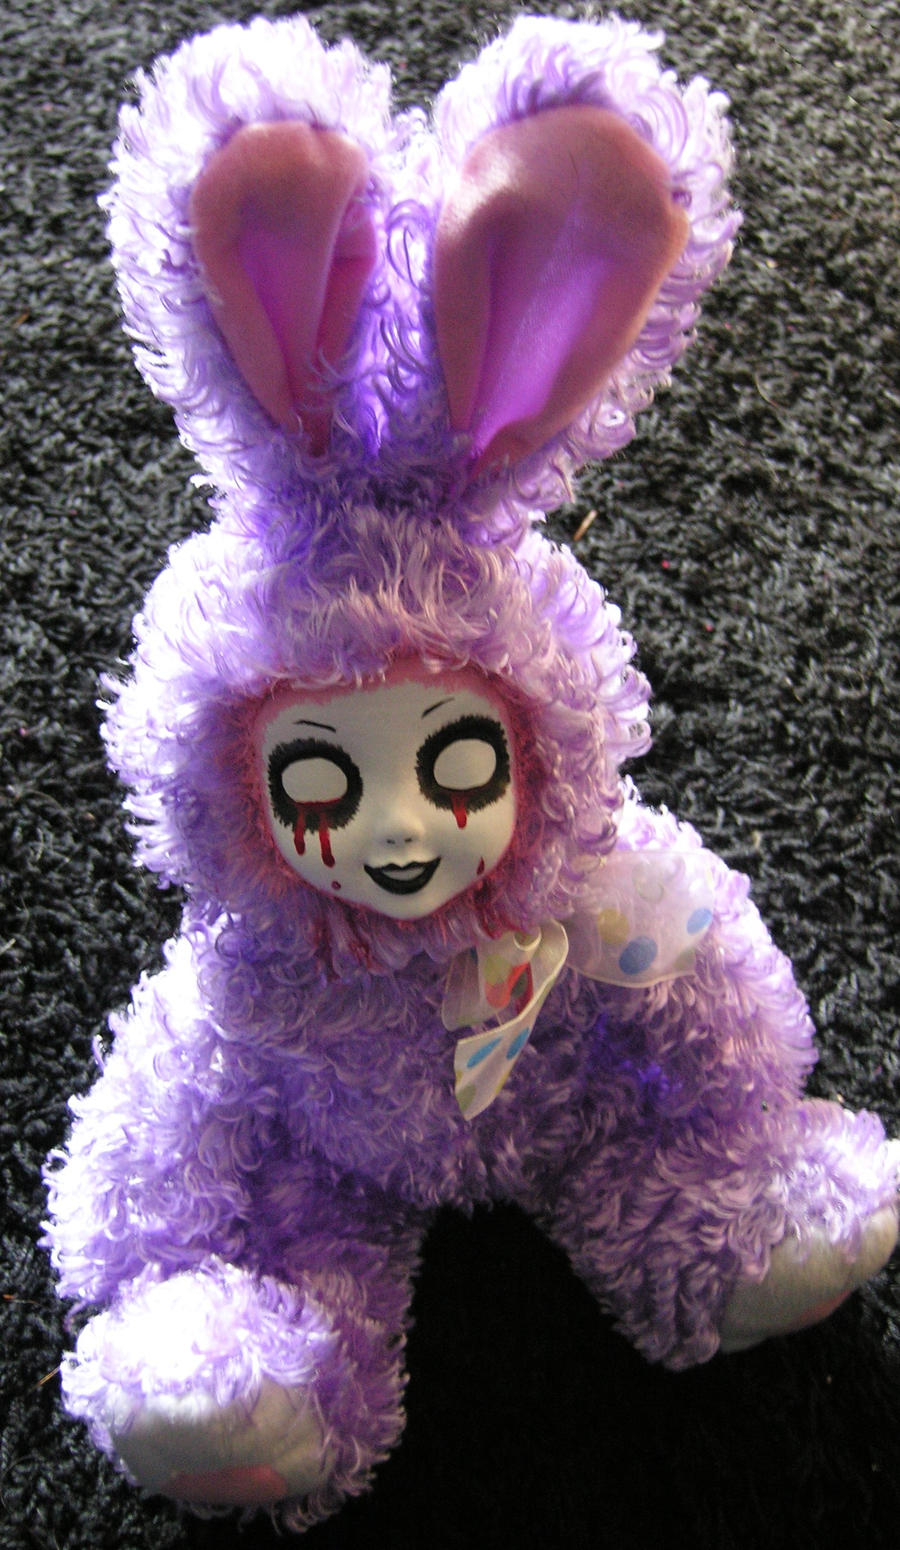 Scary Easter Bunny Photos So wrong easter bunny on